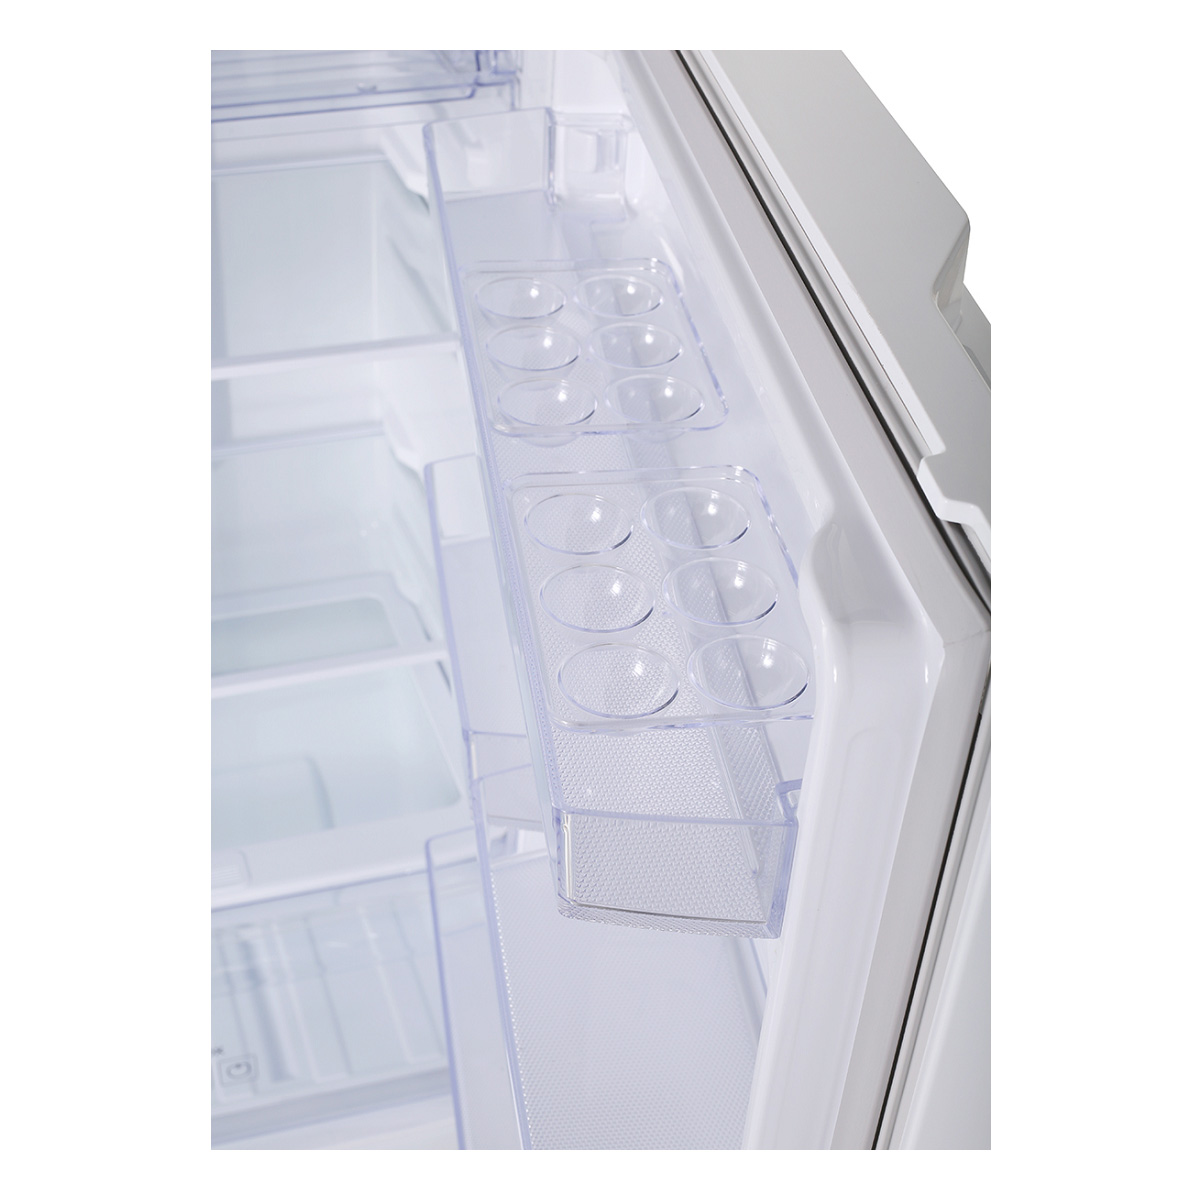 Samsung SR400LSTC 400Litres Top Mount Fridge with Twin Cooling Plus 35606